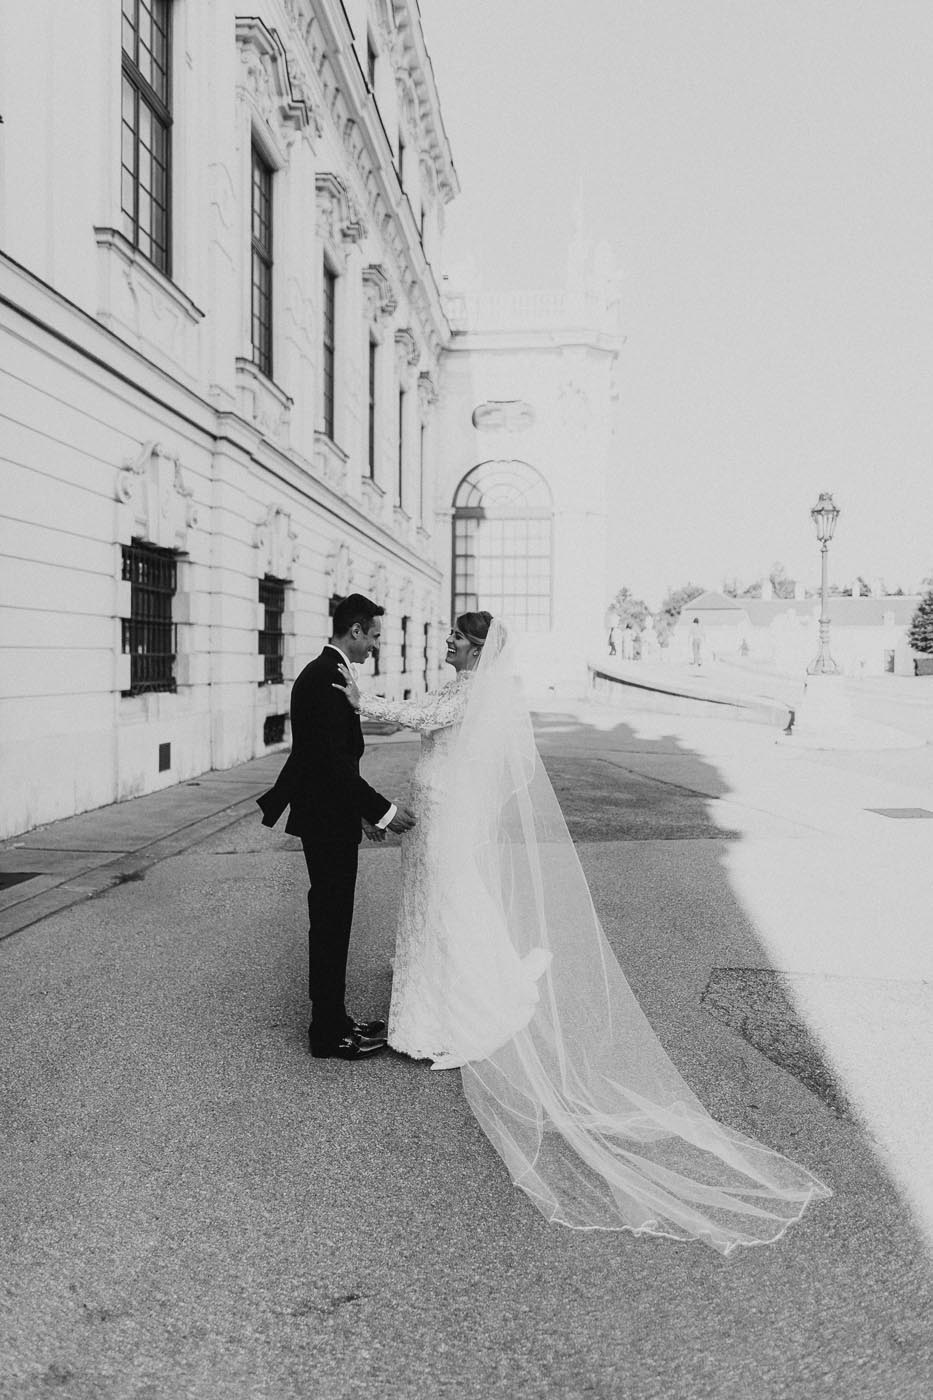 wedding-palais-liechtenstein-vienna-359